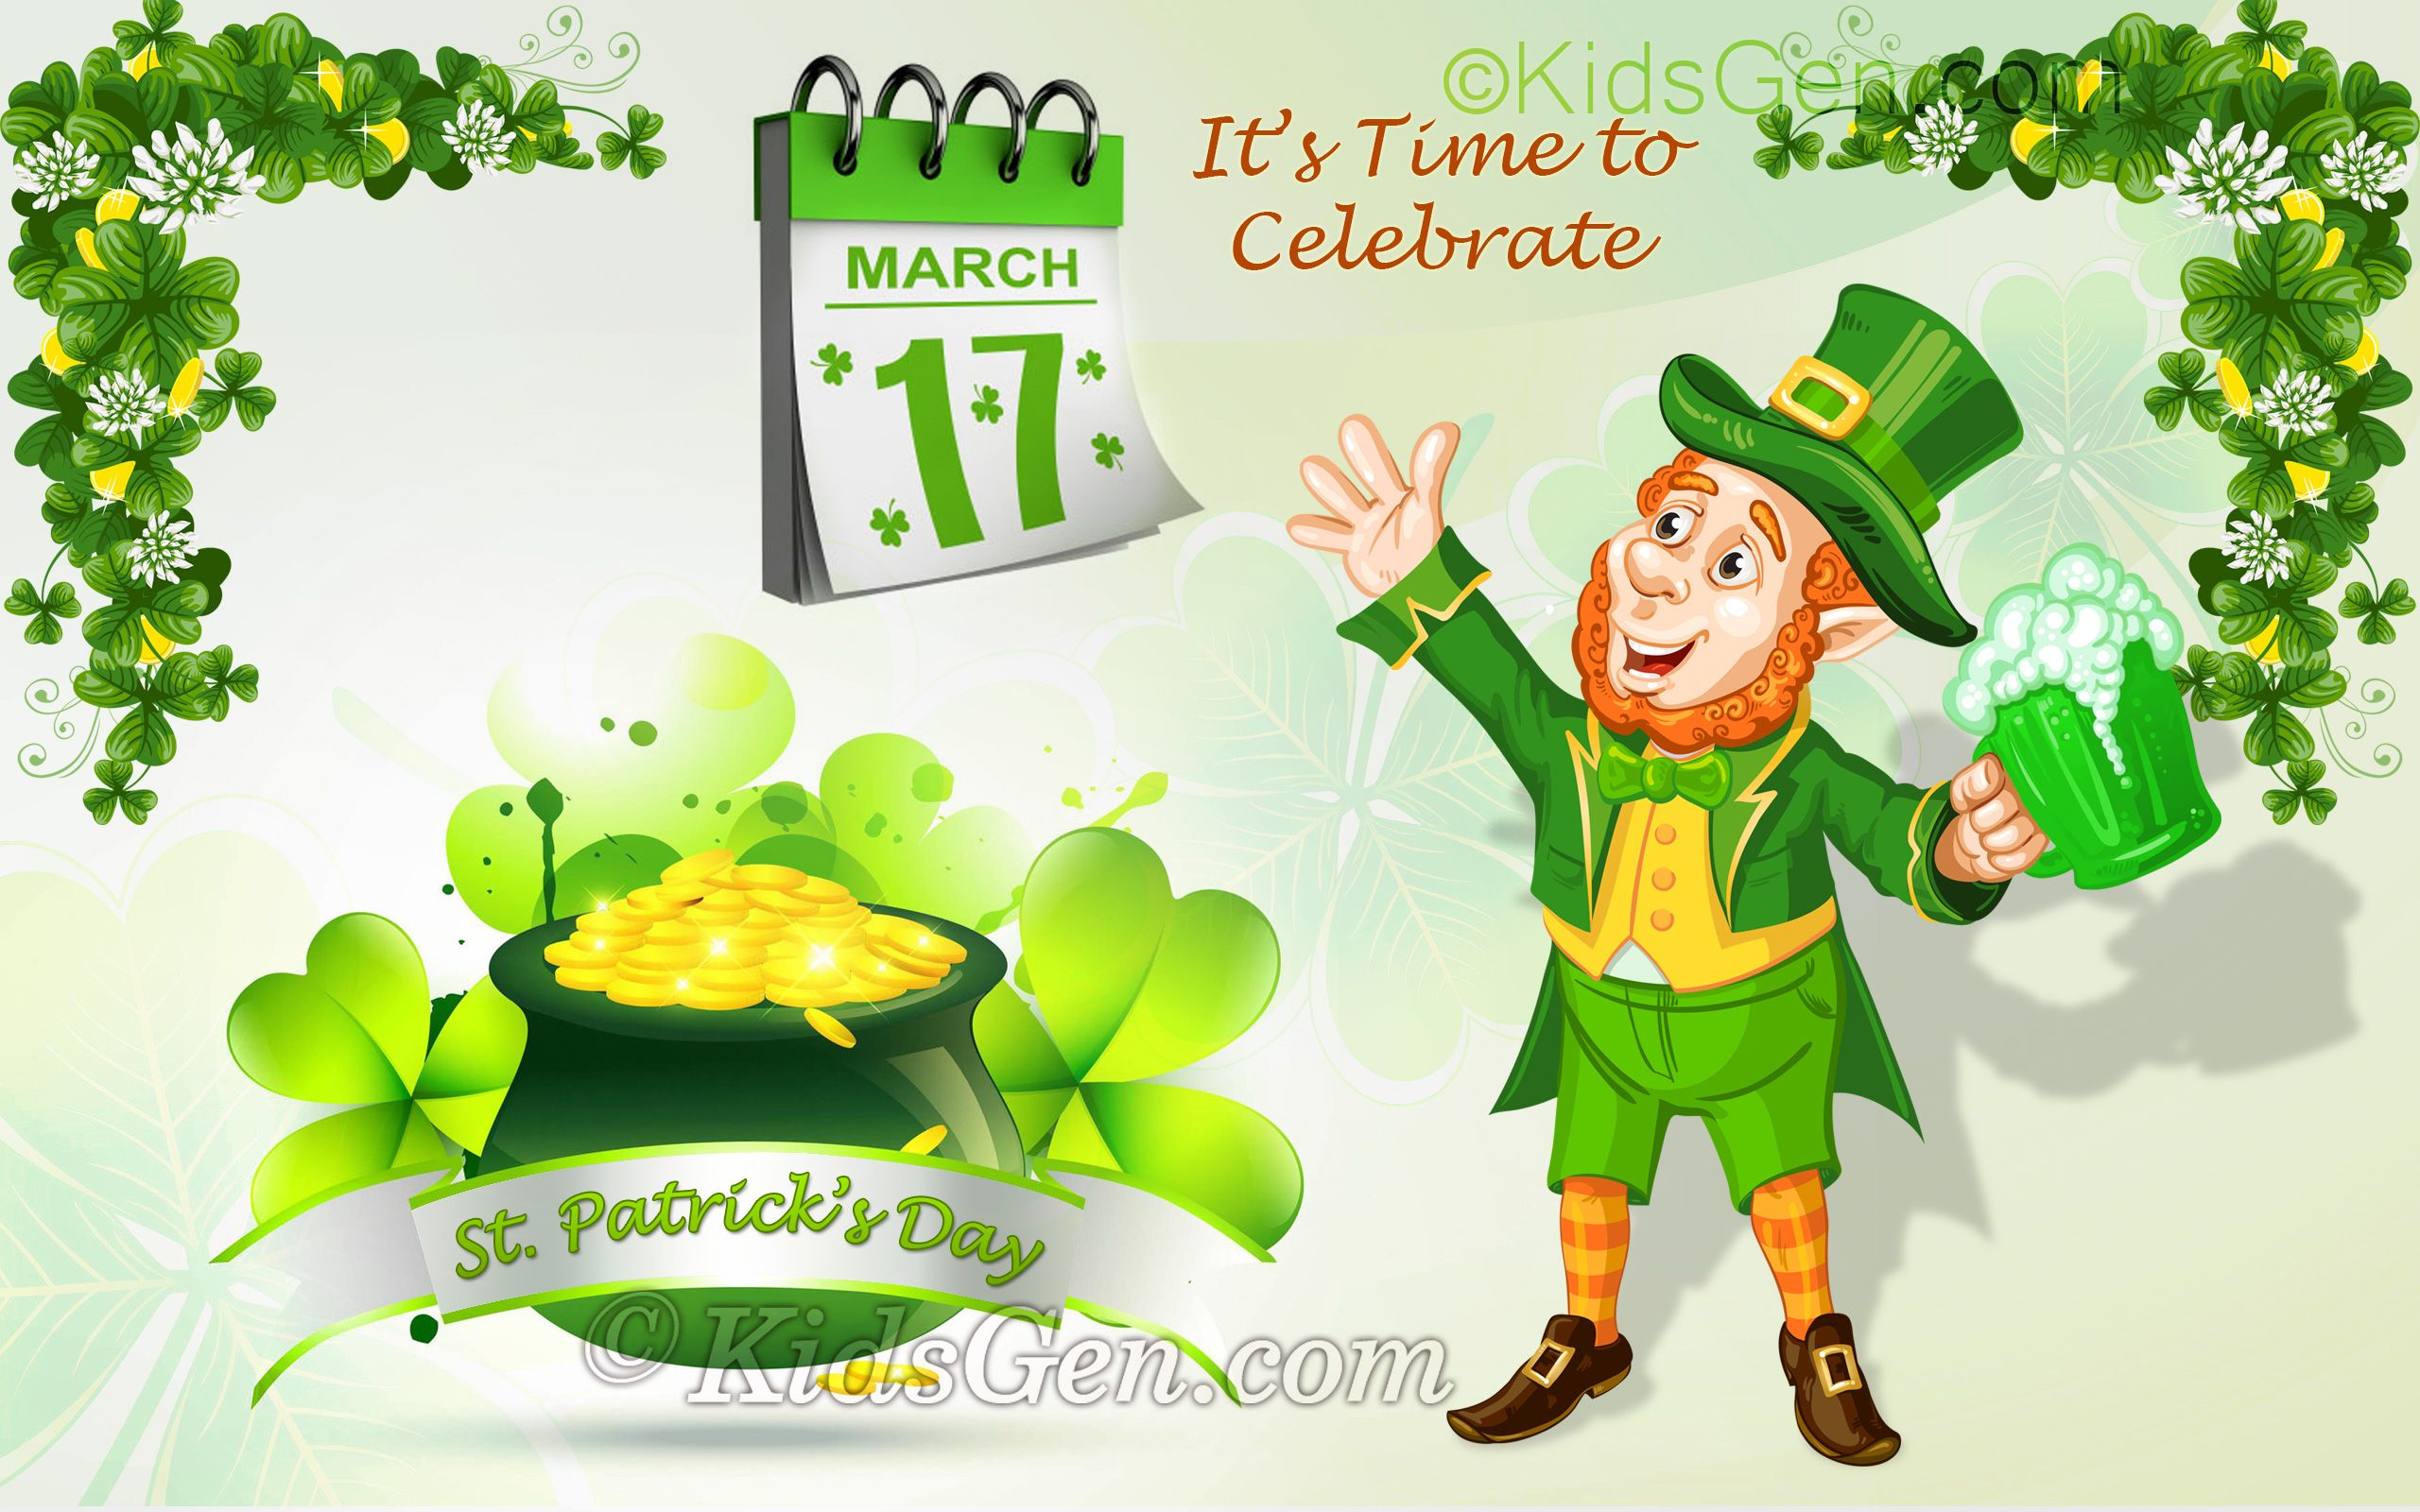 St patrick 39 s day wallpapers for widescreen desktop mobiles and in 2019 free desktop - Saint patricks day wallpaper free ...